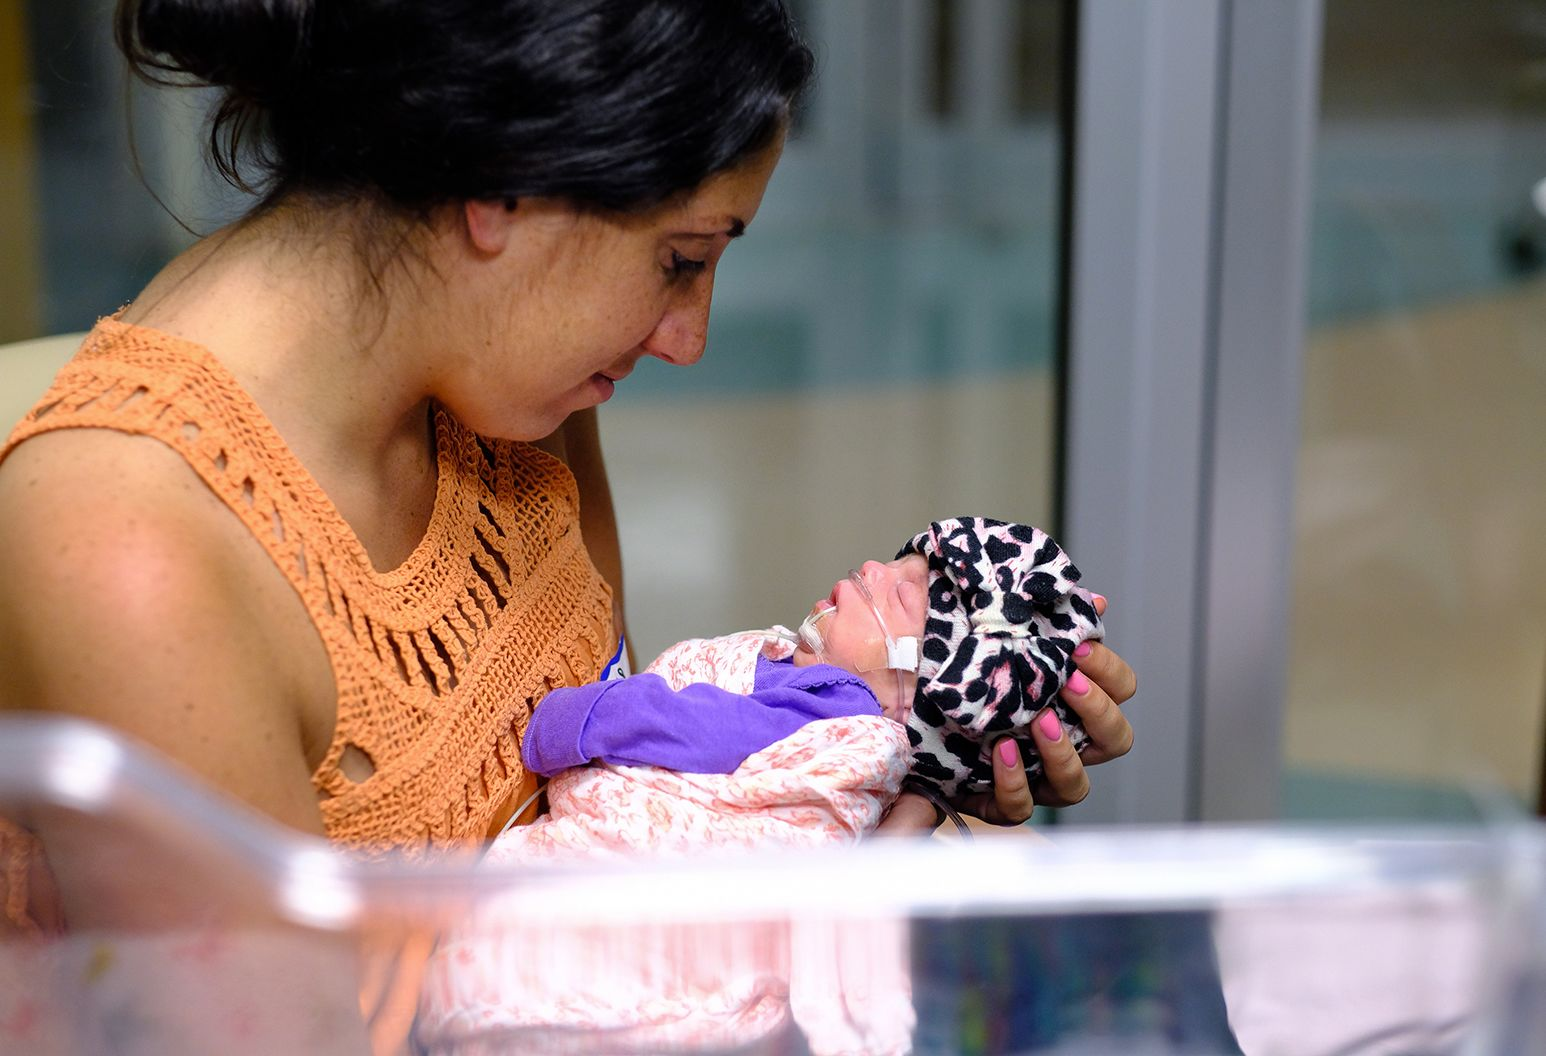 Woman in orange shirt holding infant baby in the hospital.